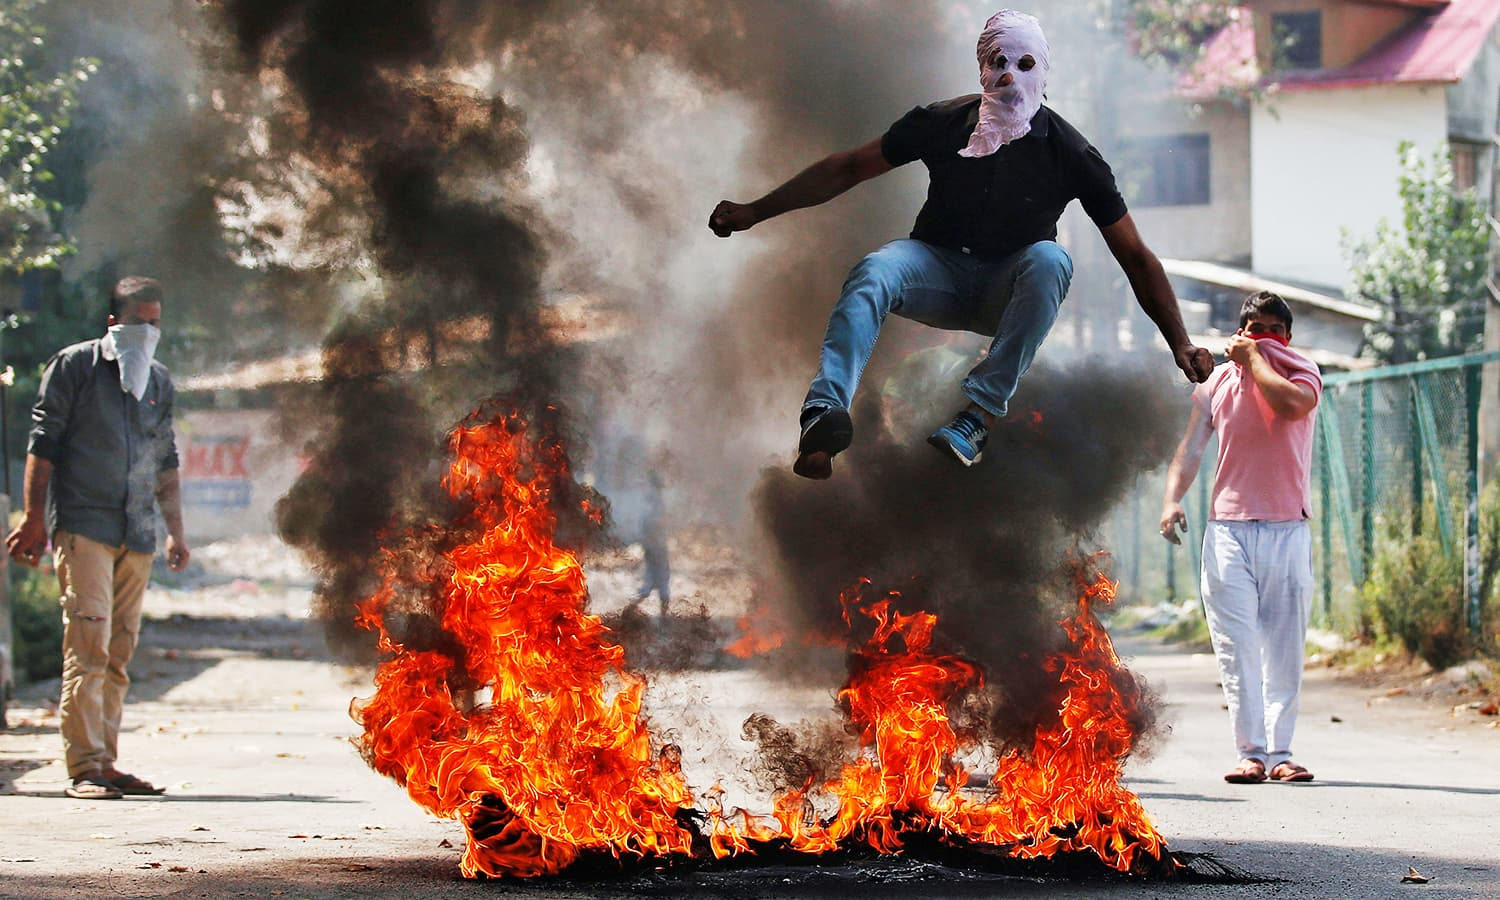 A man in a balaclava jumps over burning debris during a protest against the recent killings in IHK, in Srinagar, Sept 12, 2016. ─ Reuters